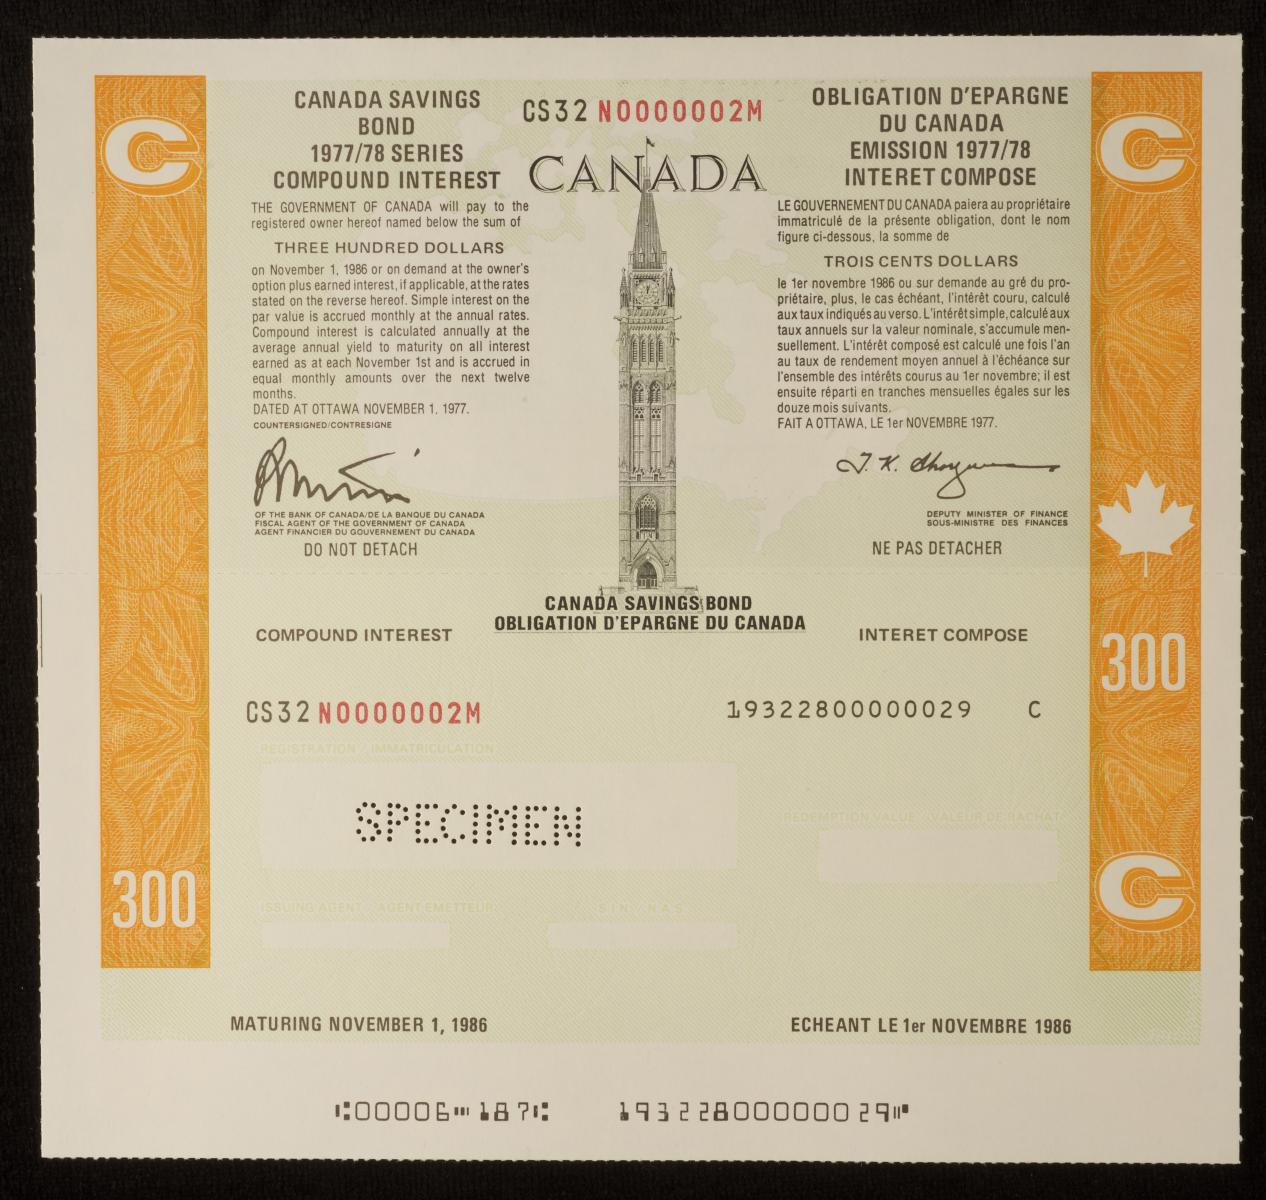 Sample image of CSB bond certificate issued in 1977.